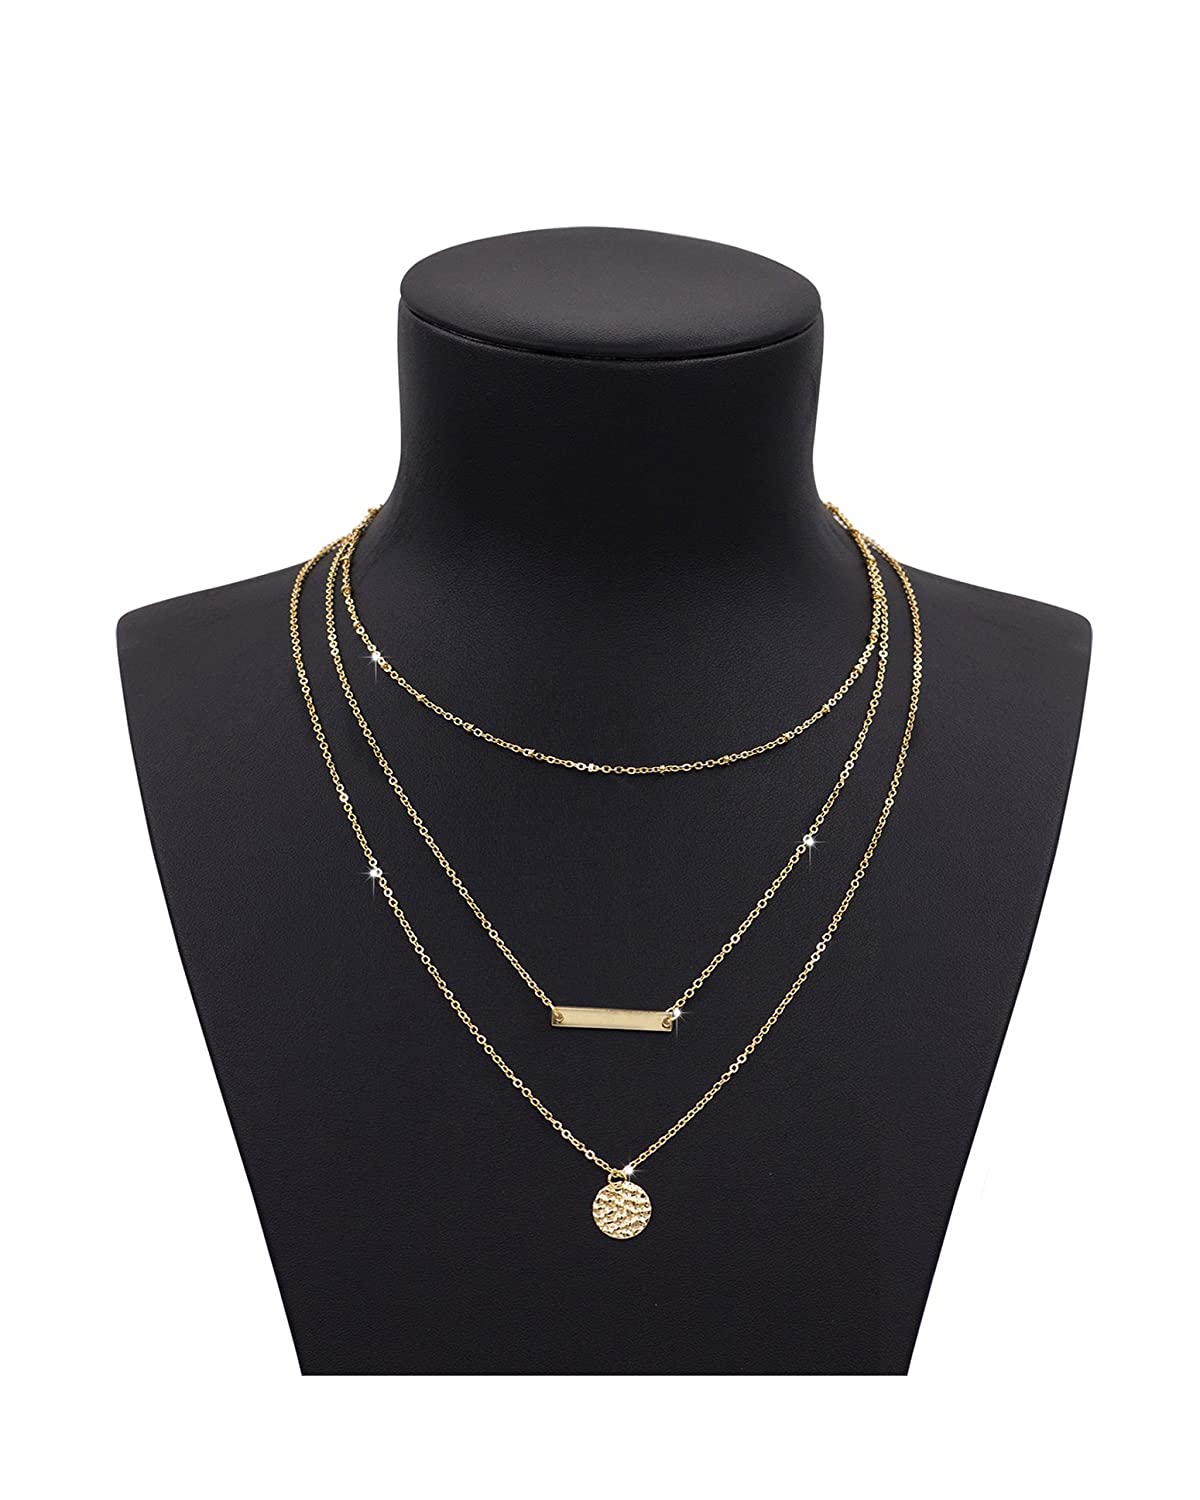 Zealmer Metal Ring Stick Bar Pendant Necklace Charming Sequin Thin Chain for Girls Women C119US-Gold